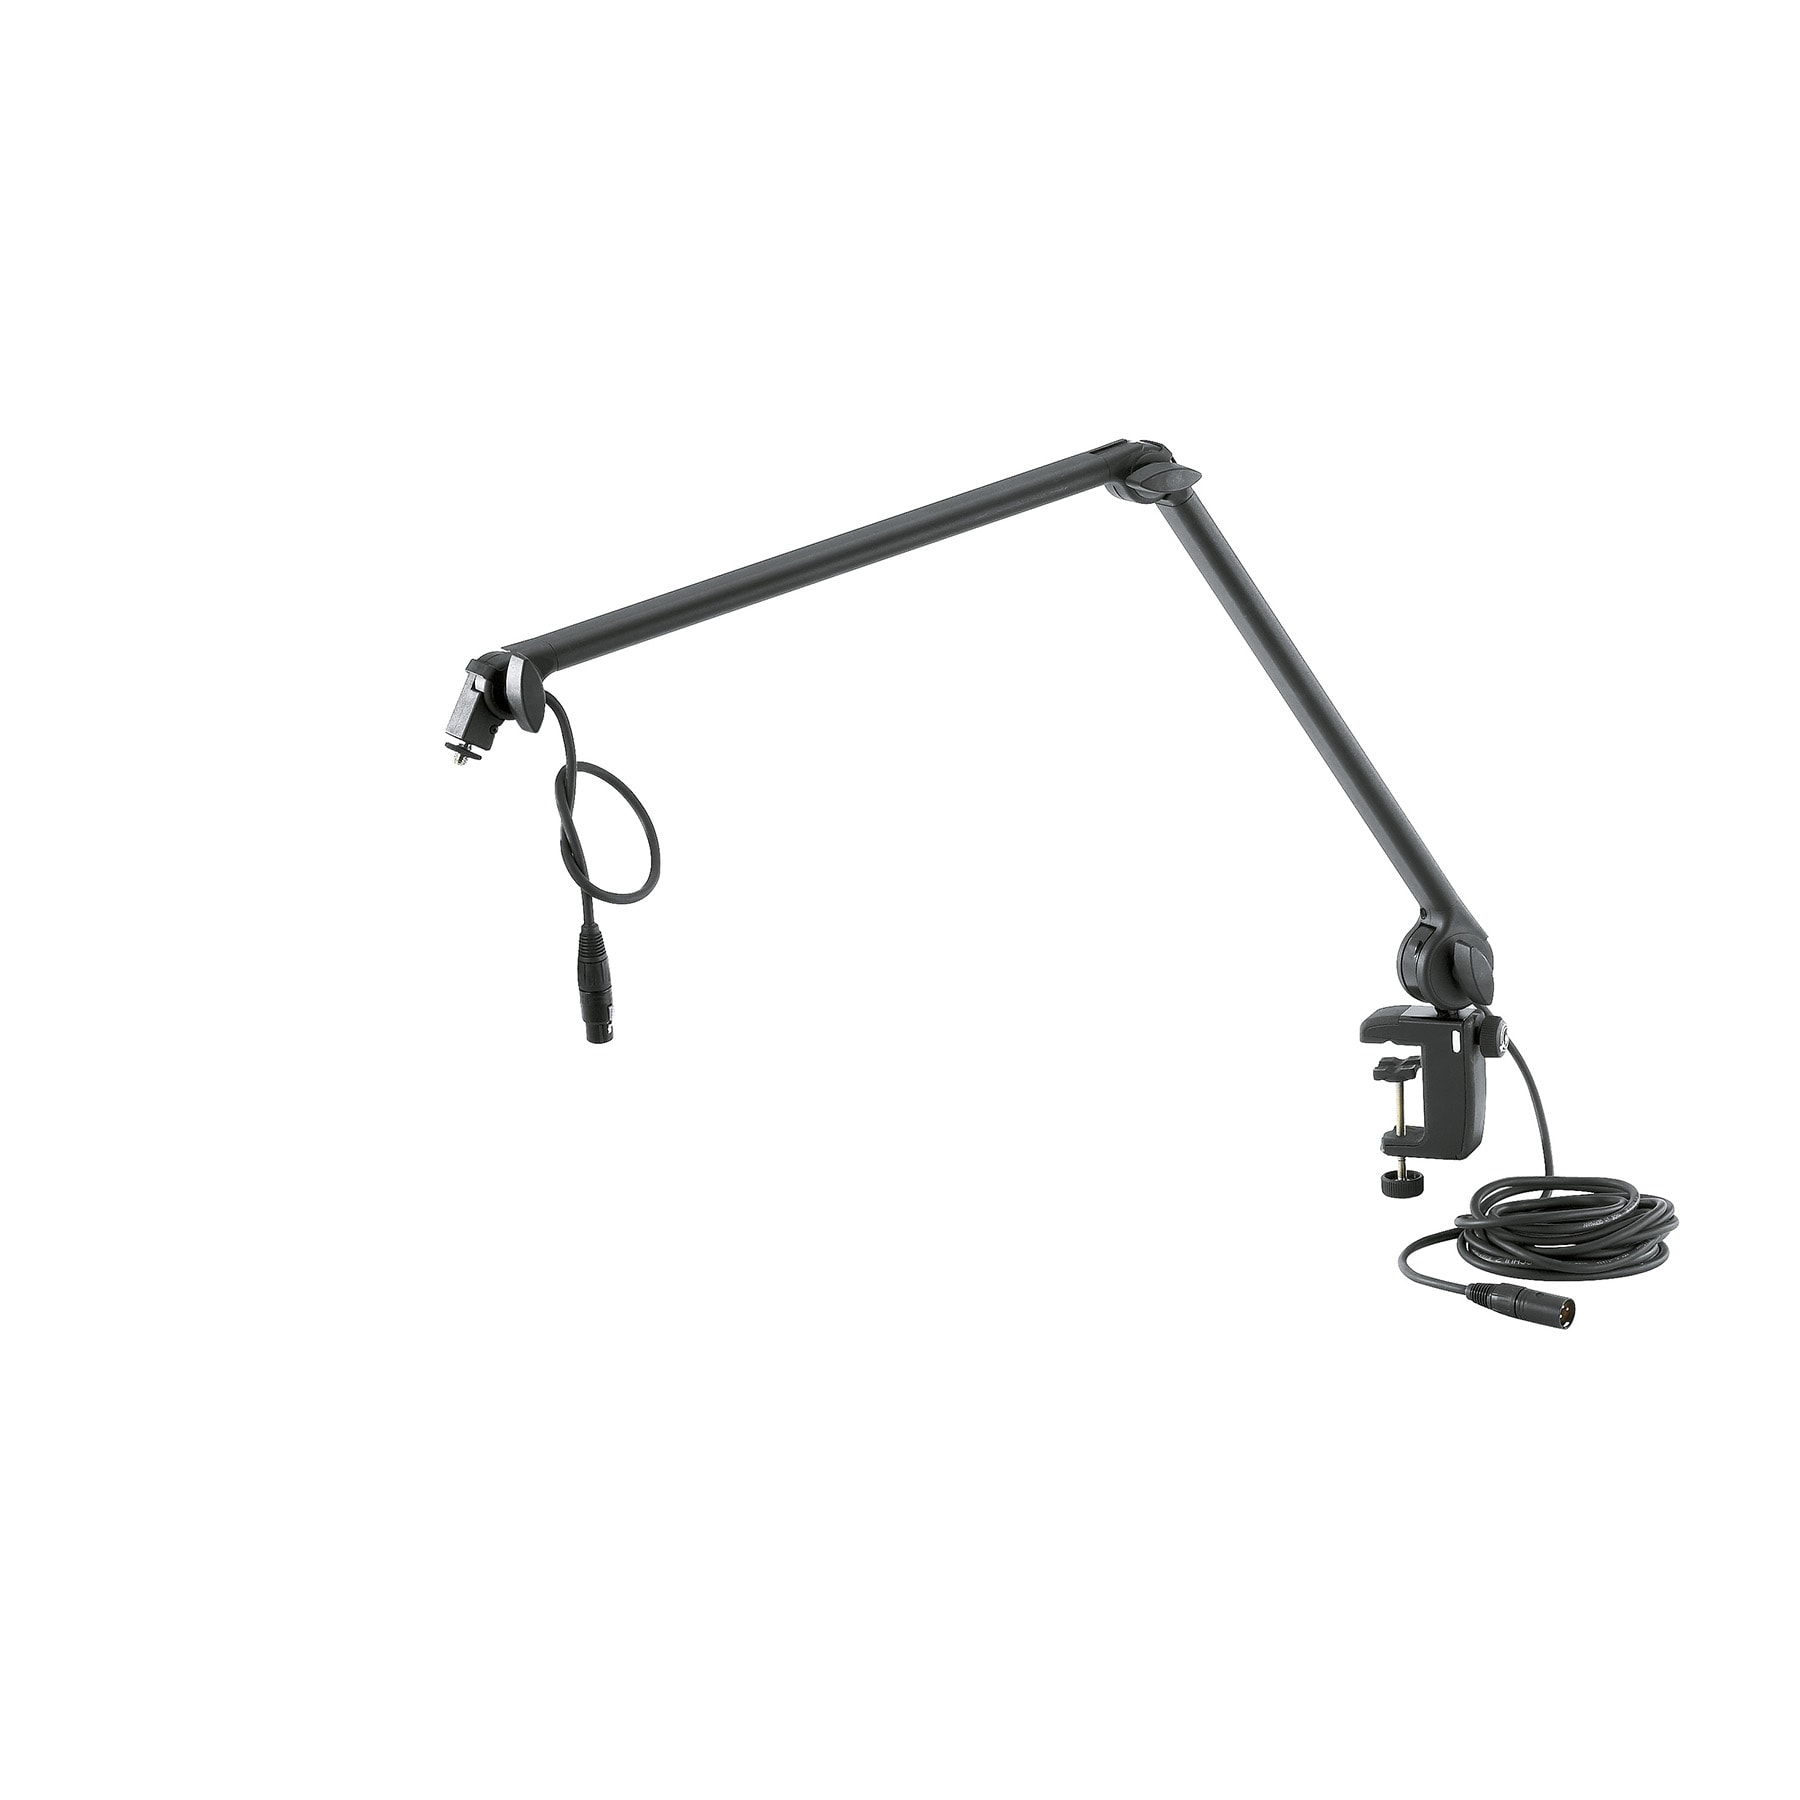 KM23860 - Microphone desk arm